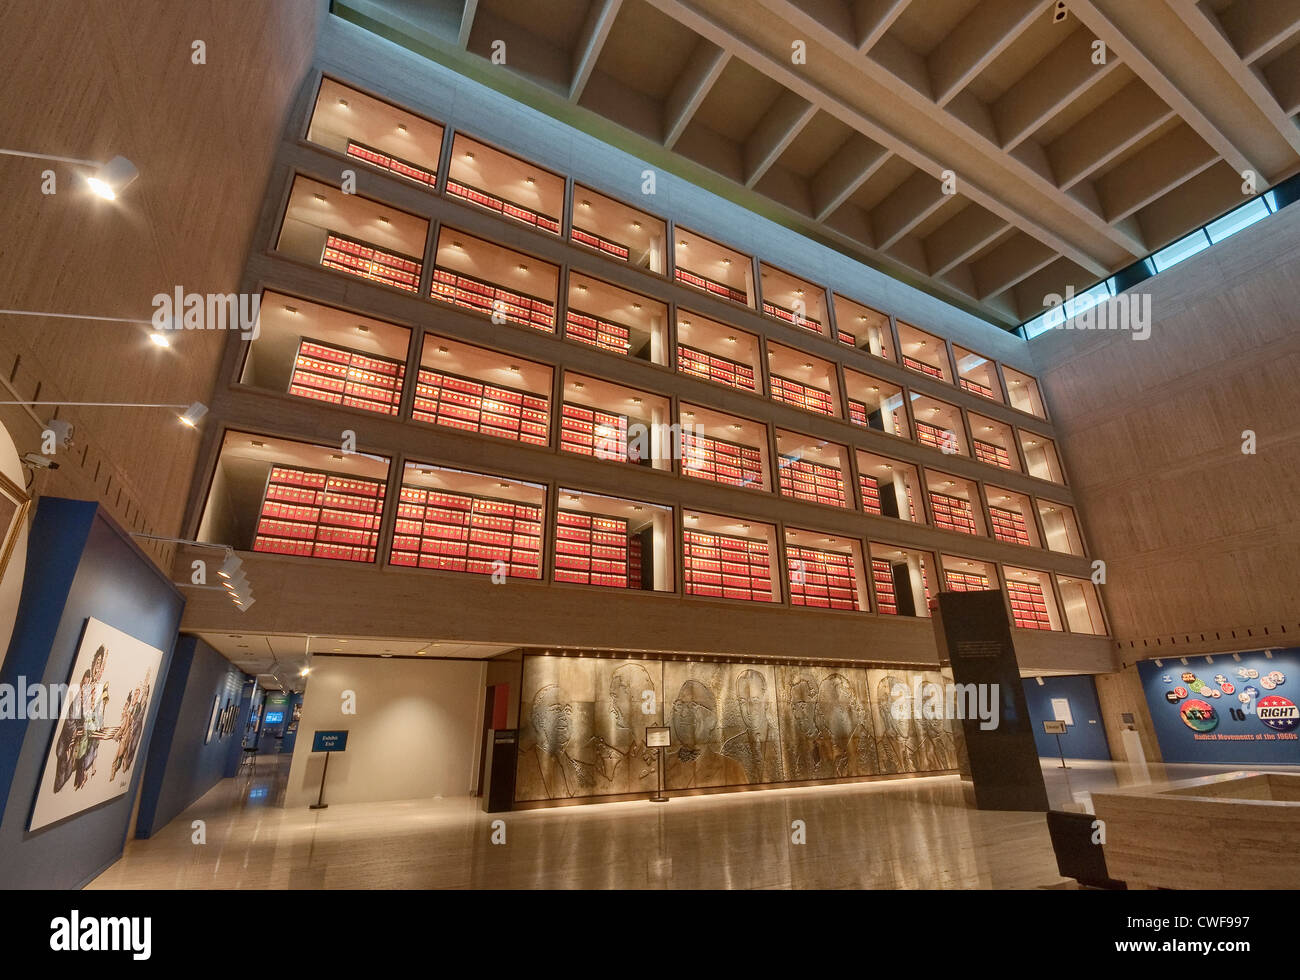 Archives section over Great Hall at Lyndon Baines Johnson Library and Museum (LBJ Library) in Austin, Texas, USA Stock Photo